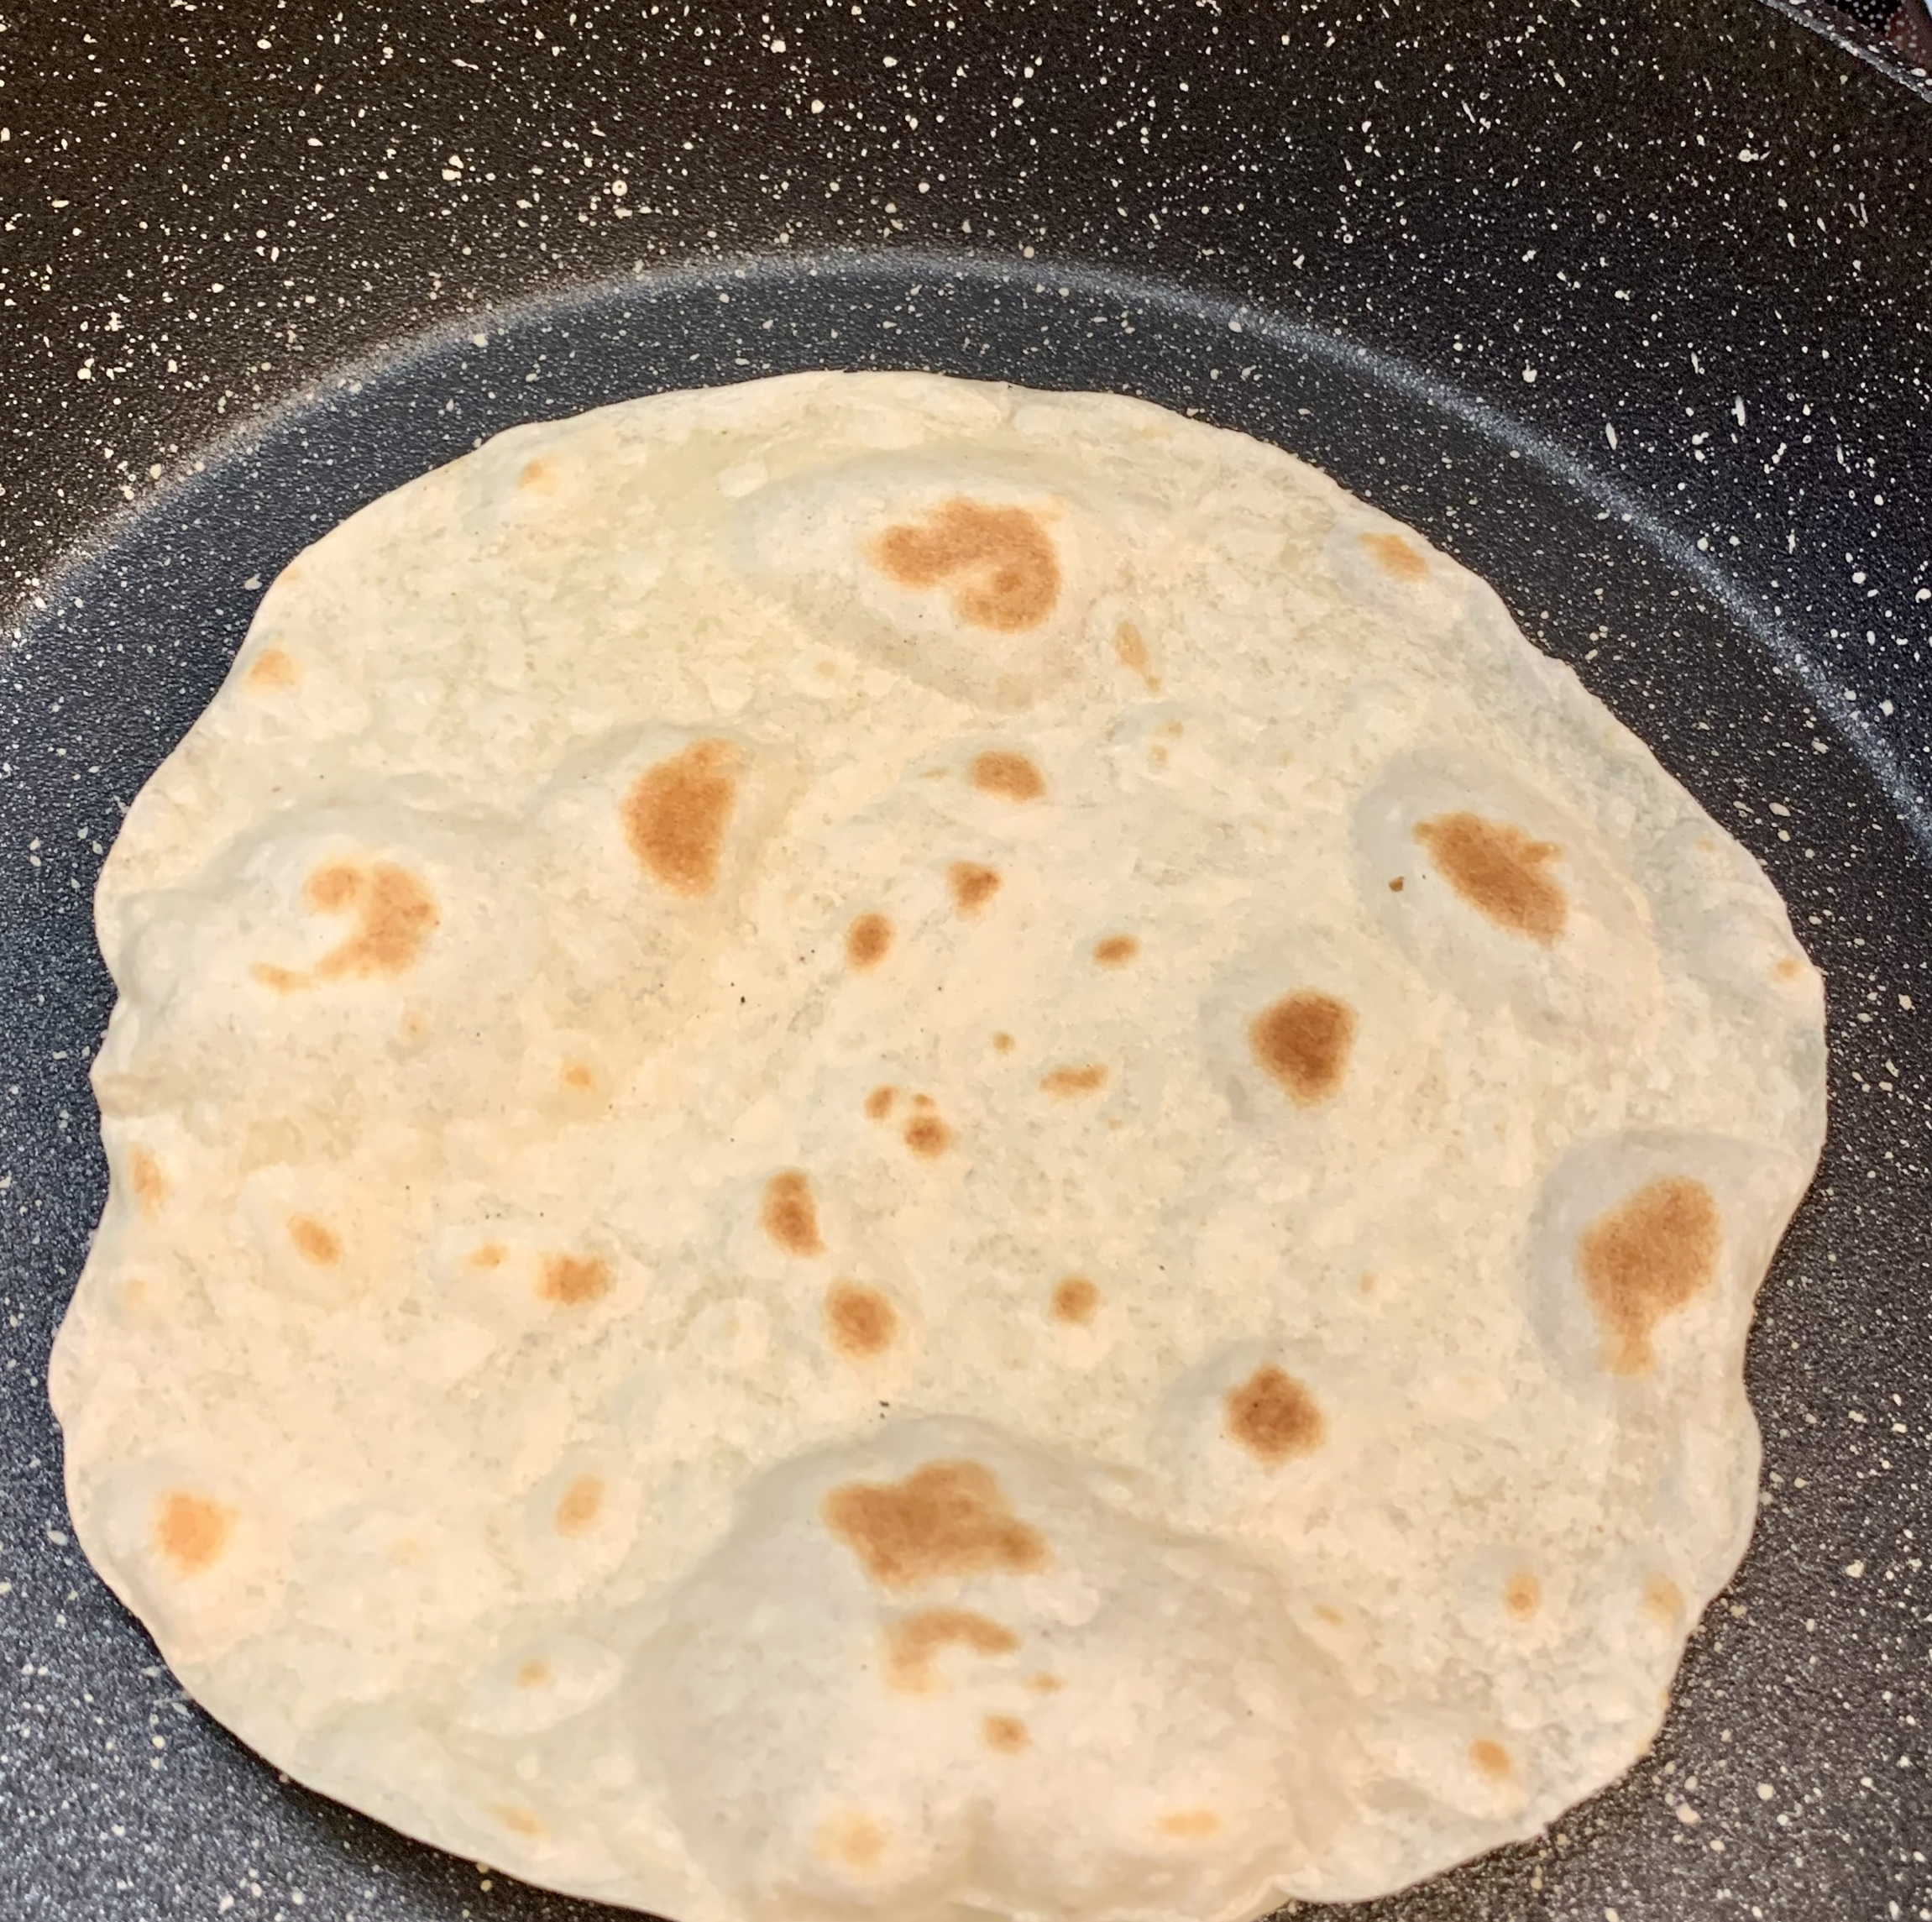 Flour tortillas 2